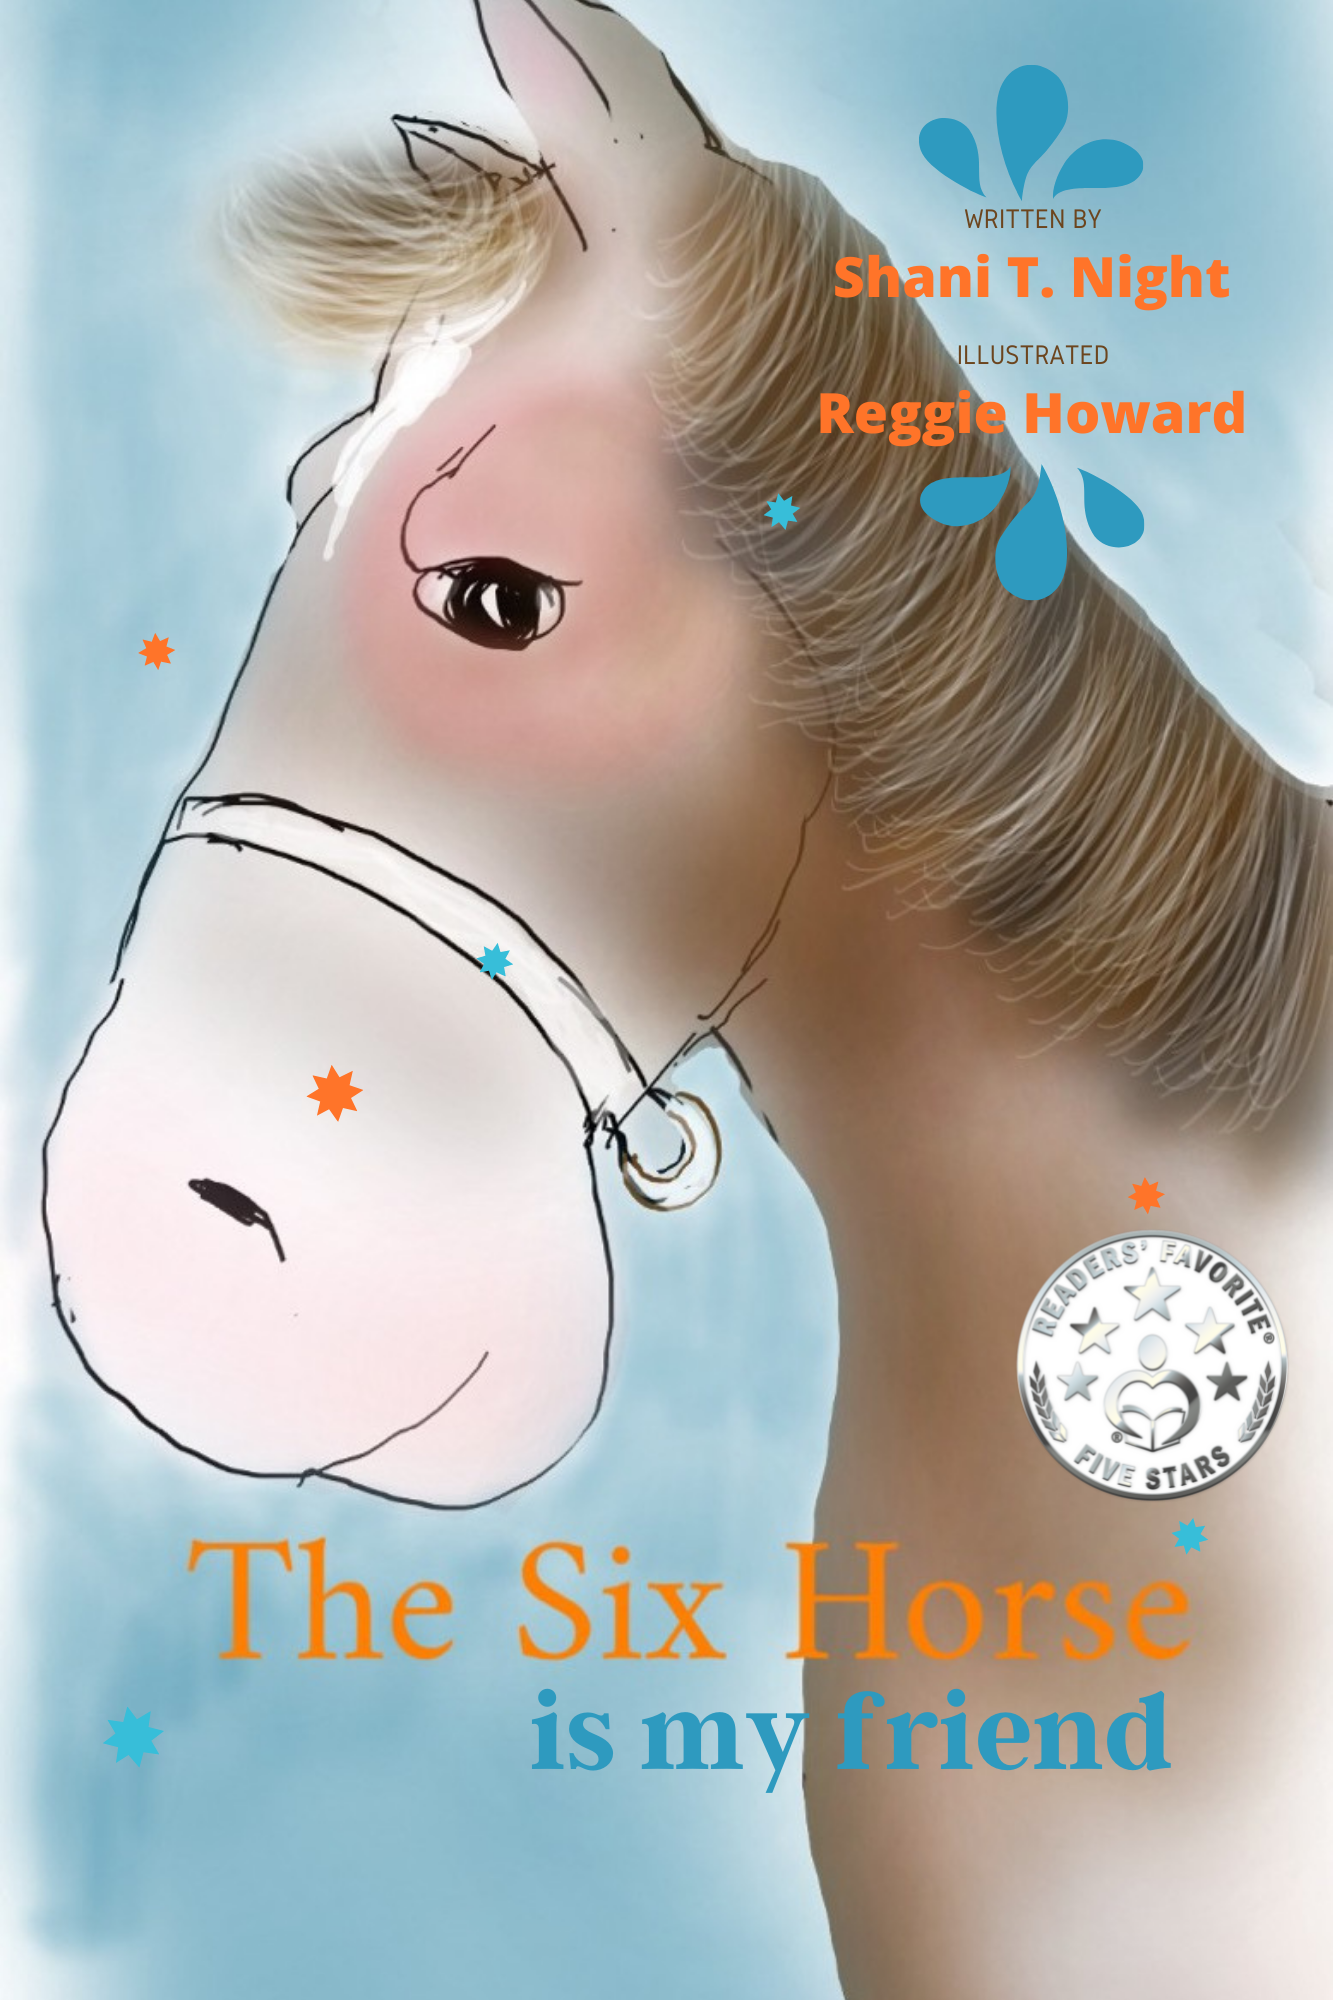 The Six Horse: Is My Friend's Book Image